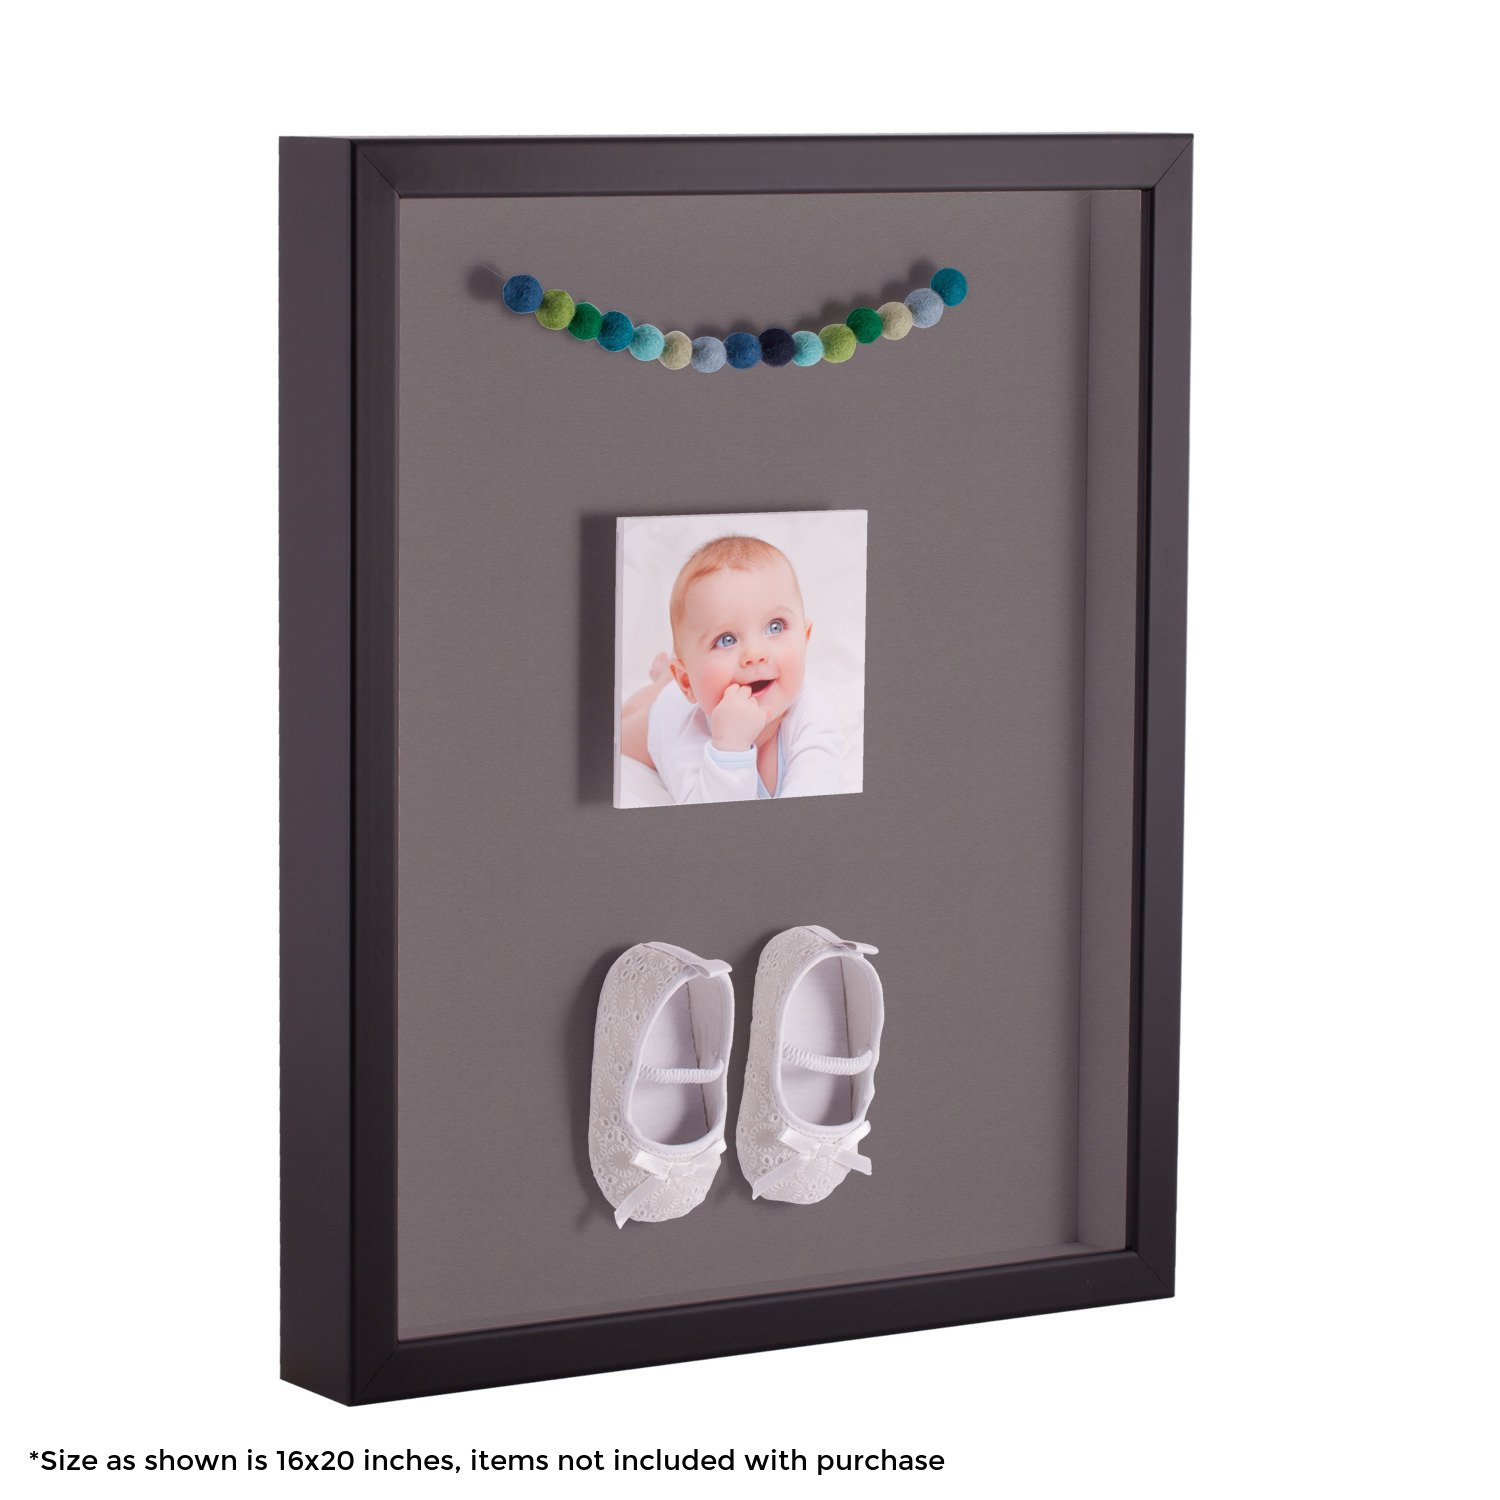 ArtToFrames 24 x 36 Inch Shadow Box Picture Frame, with a Satin Black 1'' Shadowbox frame and Pewter Mat